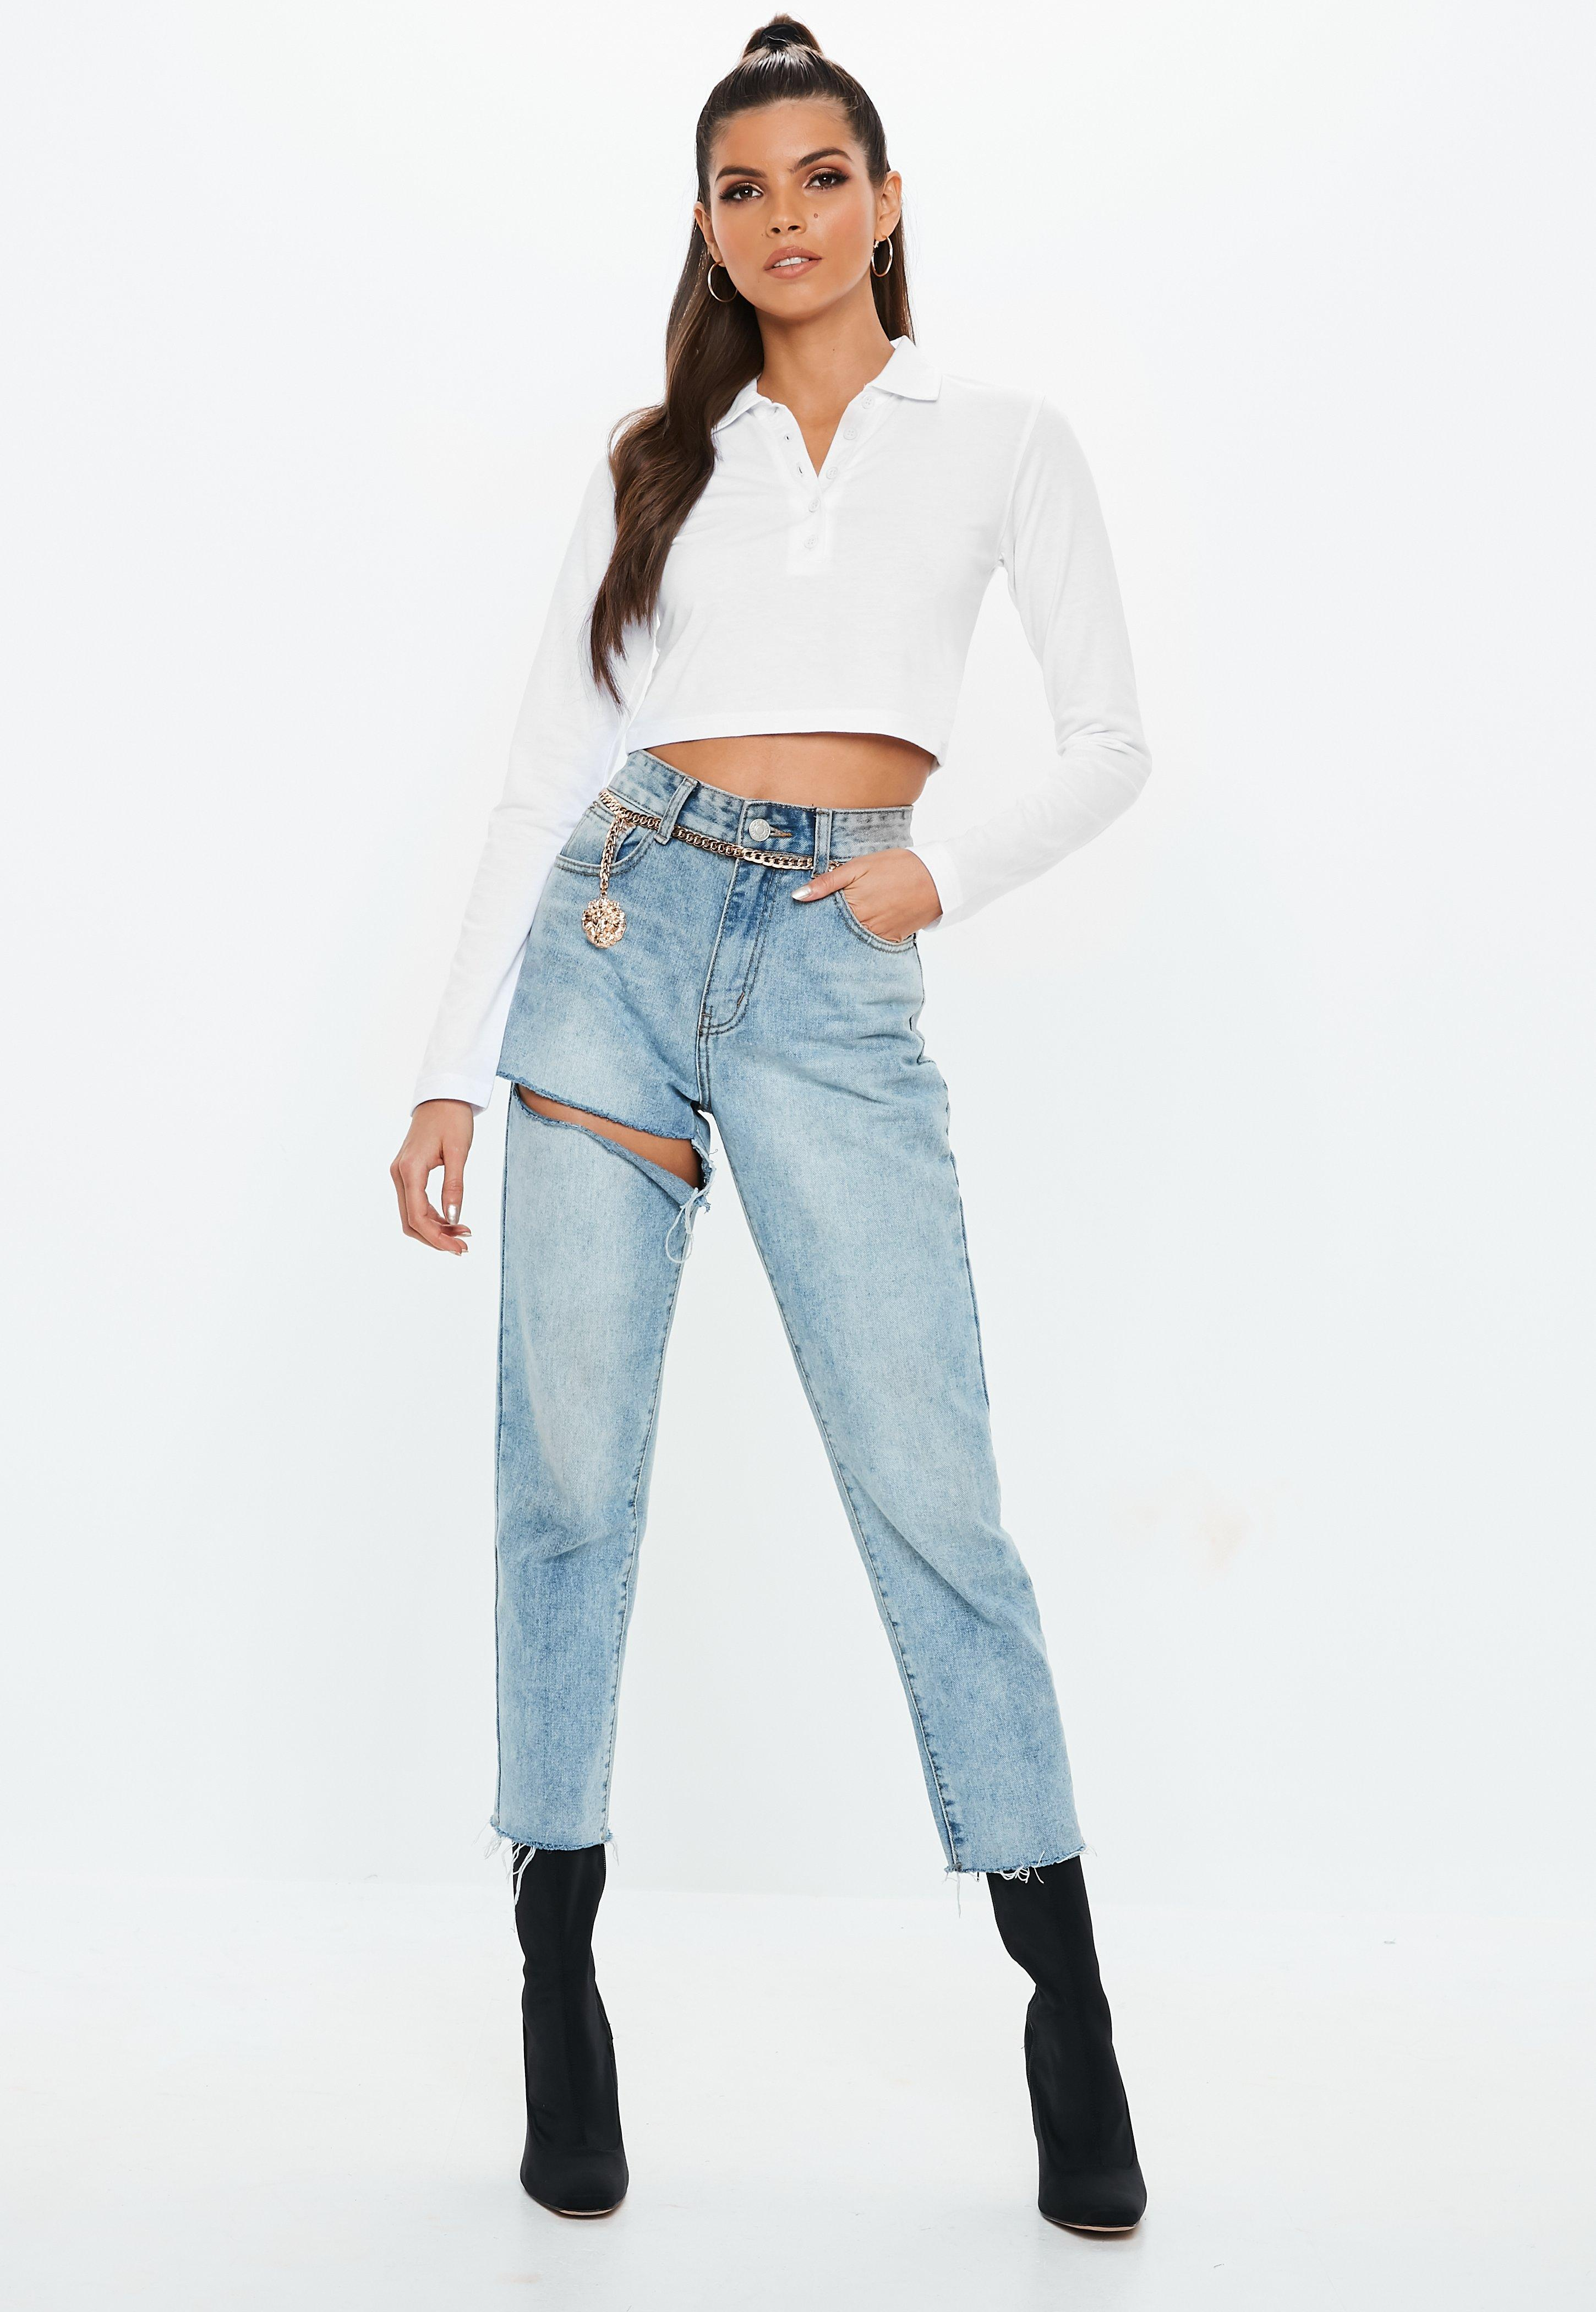 82cf82751c1a3 Missguided - White Button Front Polo Crop Top - Lyst. View fullscreen